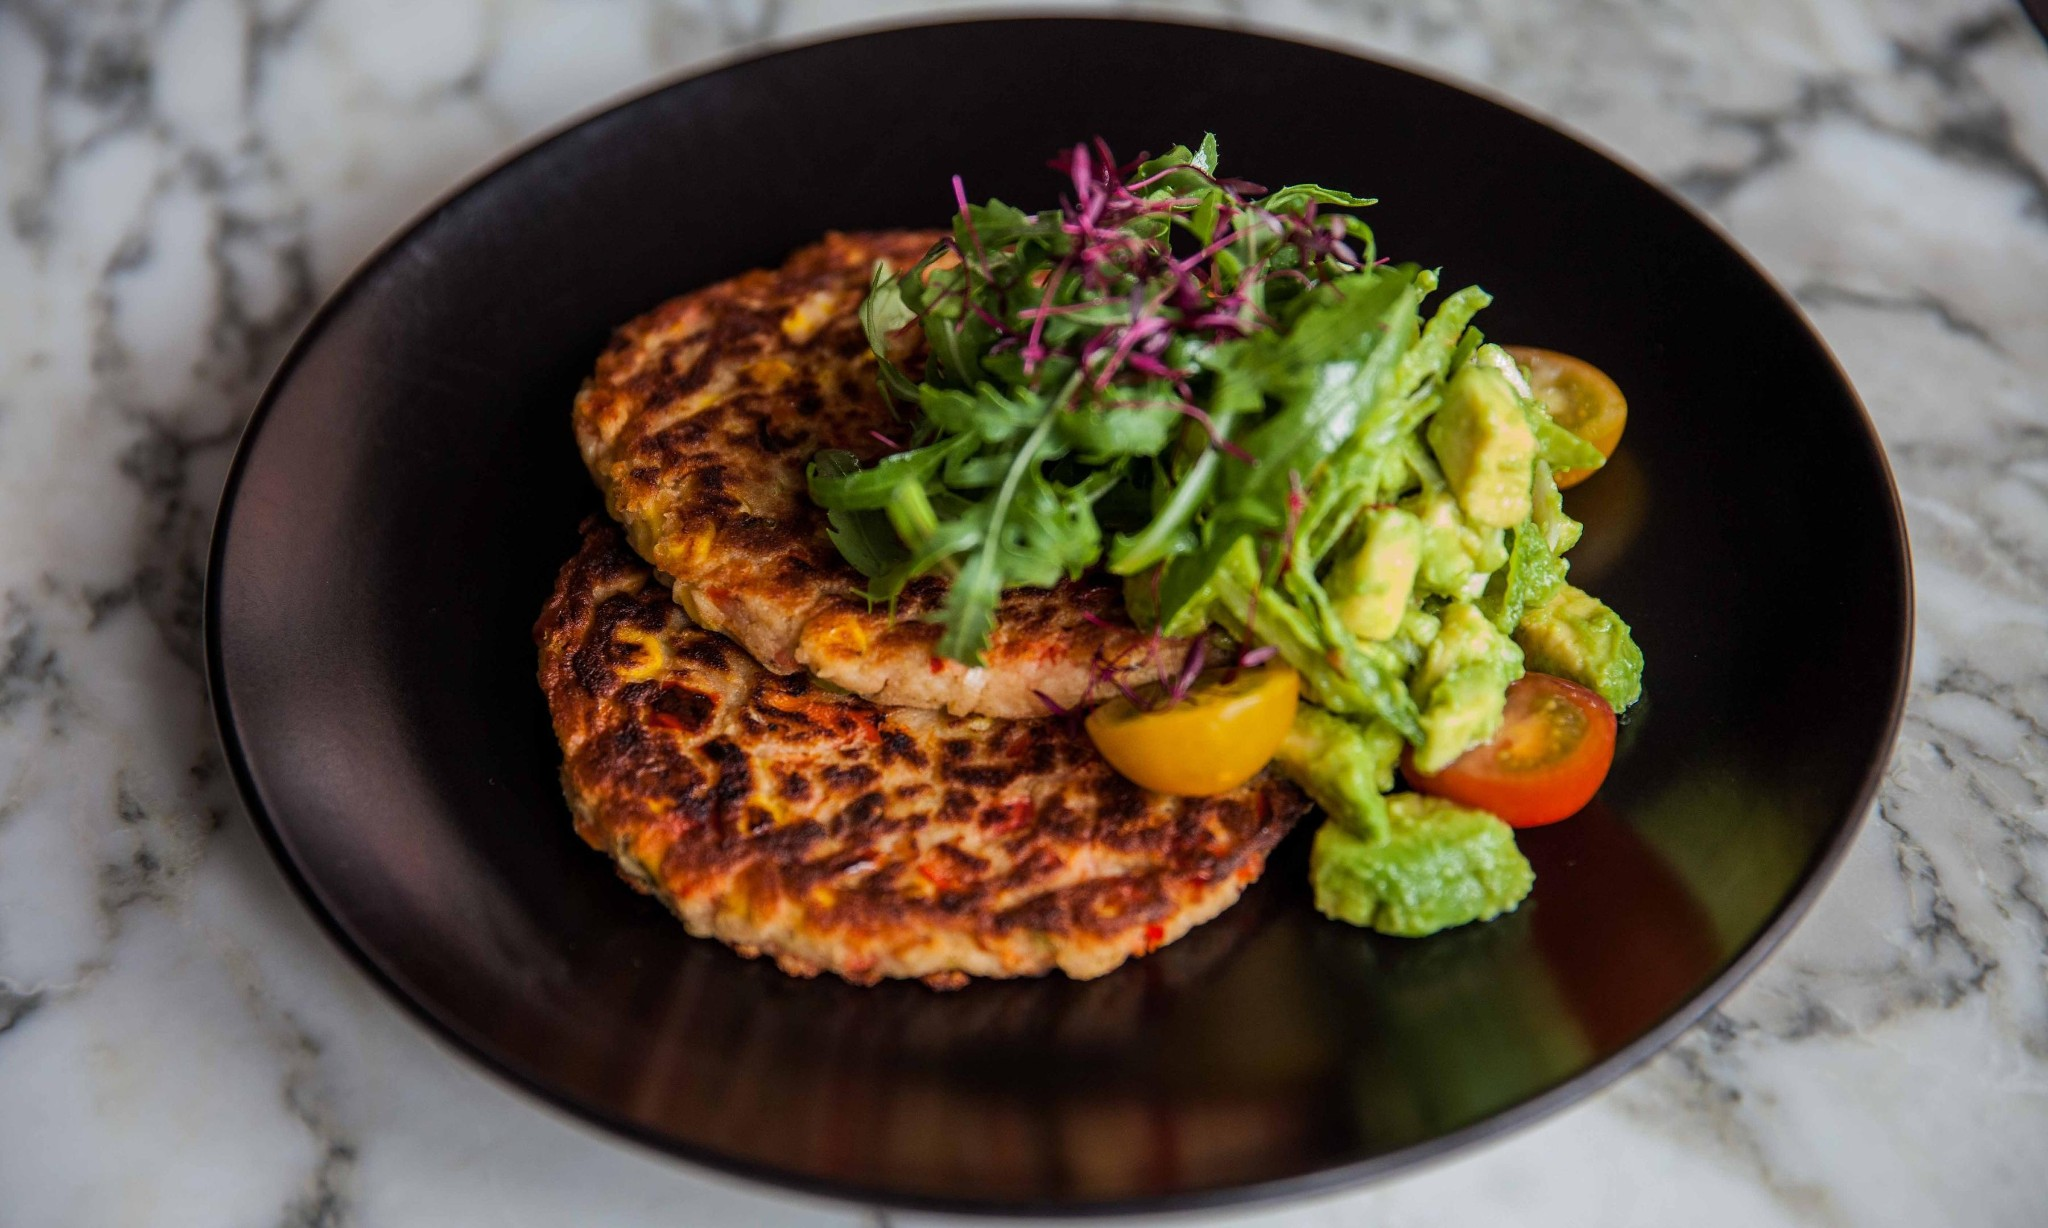 Andrea Waters's sweetcorn and red pepper pancakes with guacamole